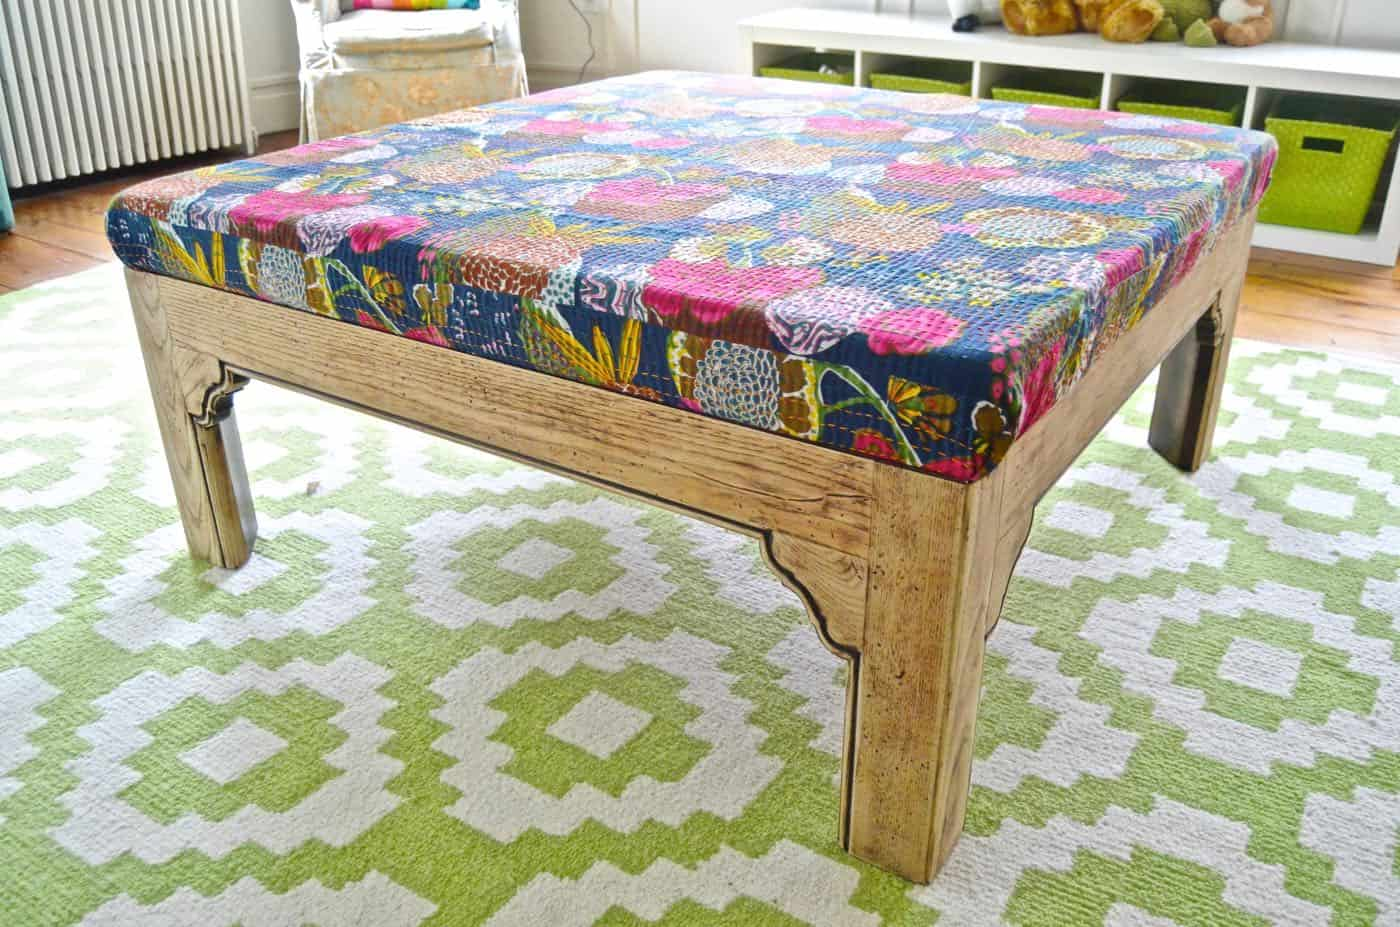 Turn a basic coffee table into an upholstered ottoman.